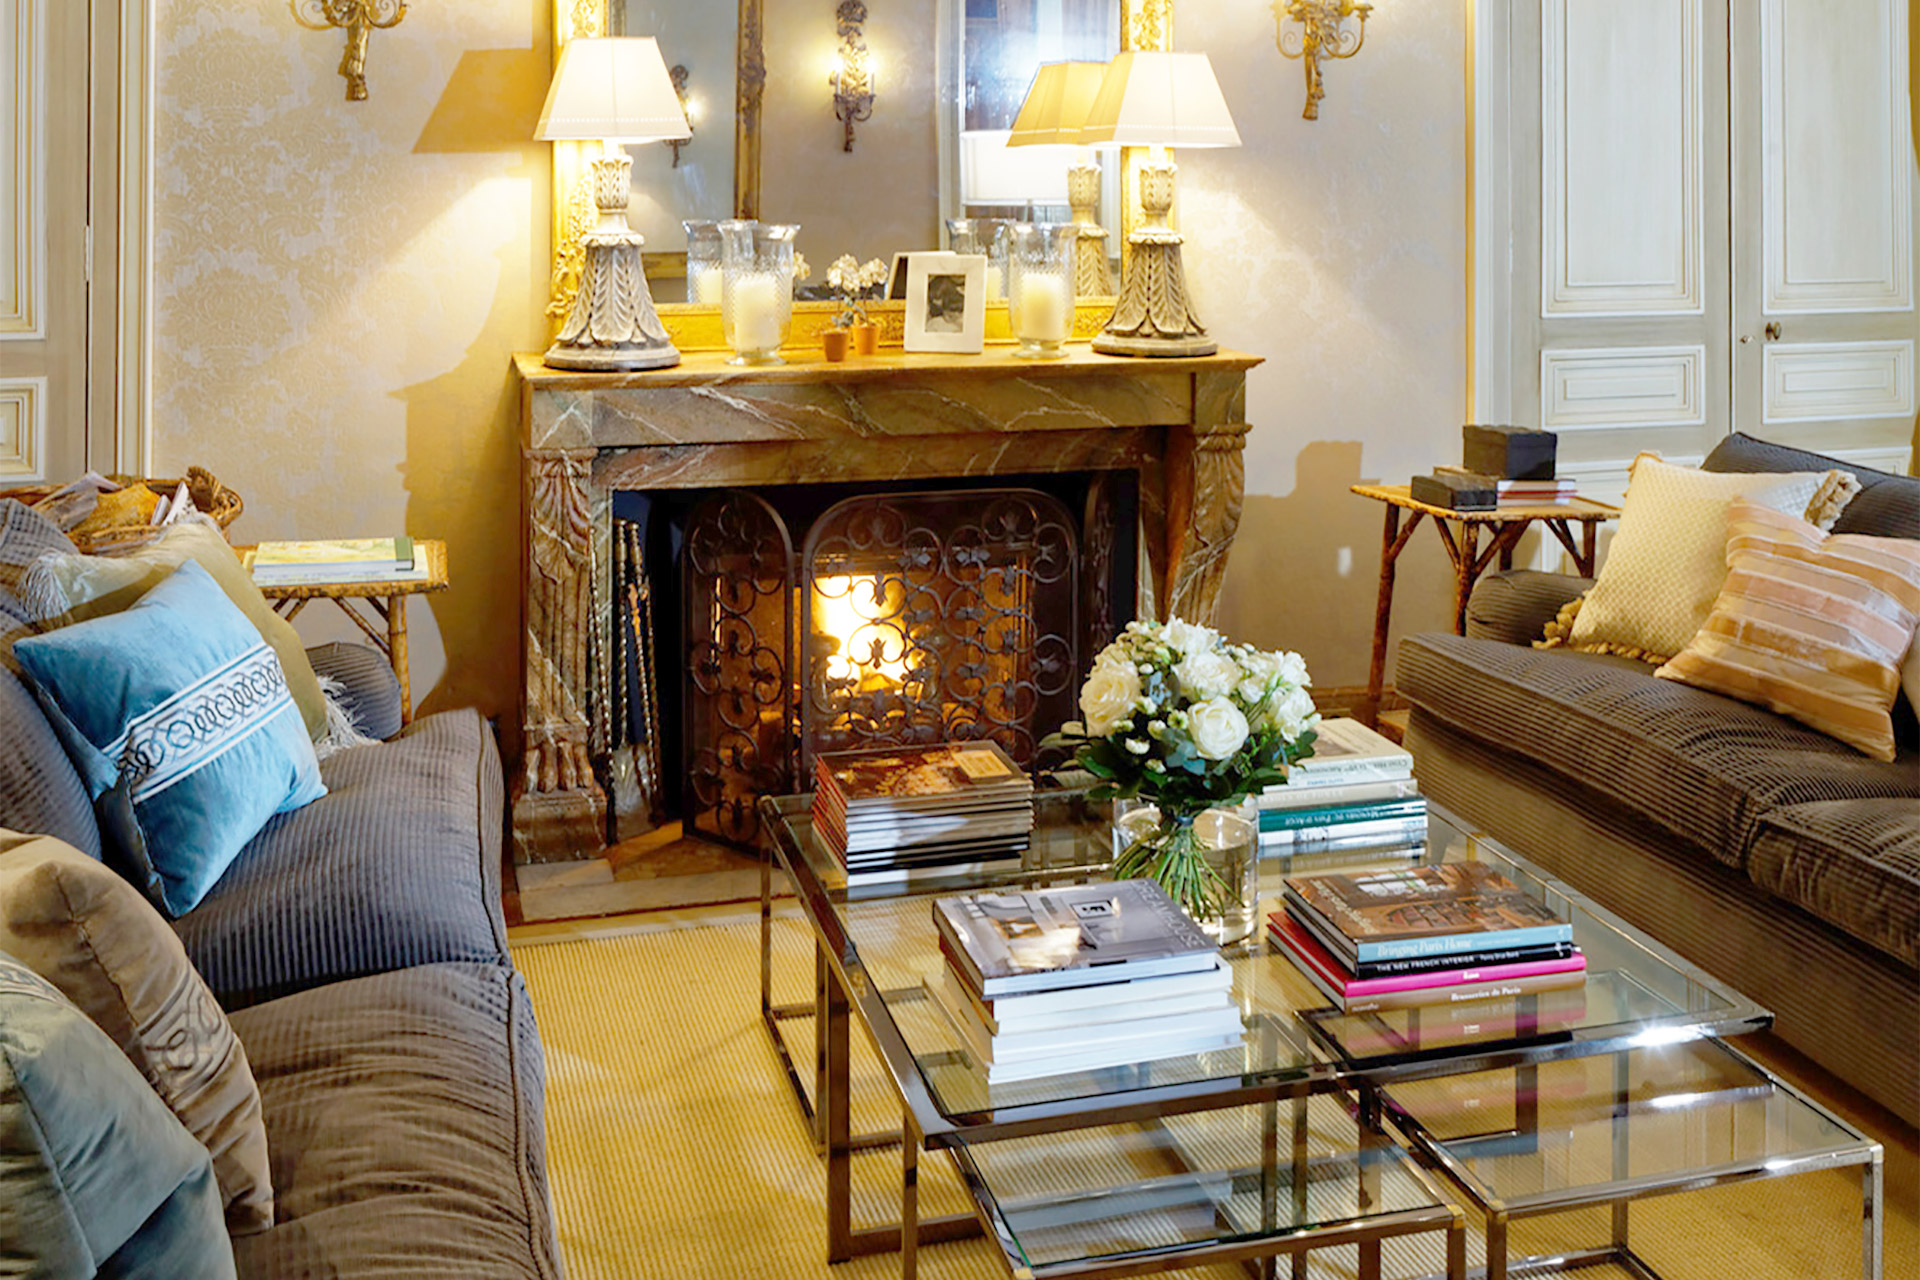 Relax in this elegant living room centered around the original marble fireplace in the Bailly Paris vacation rental